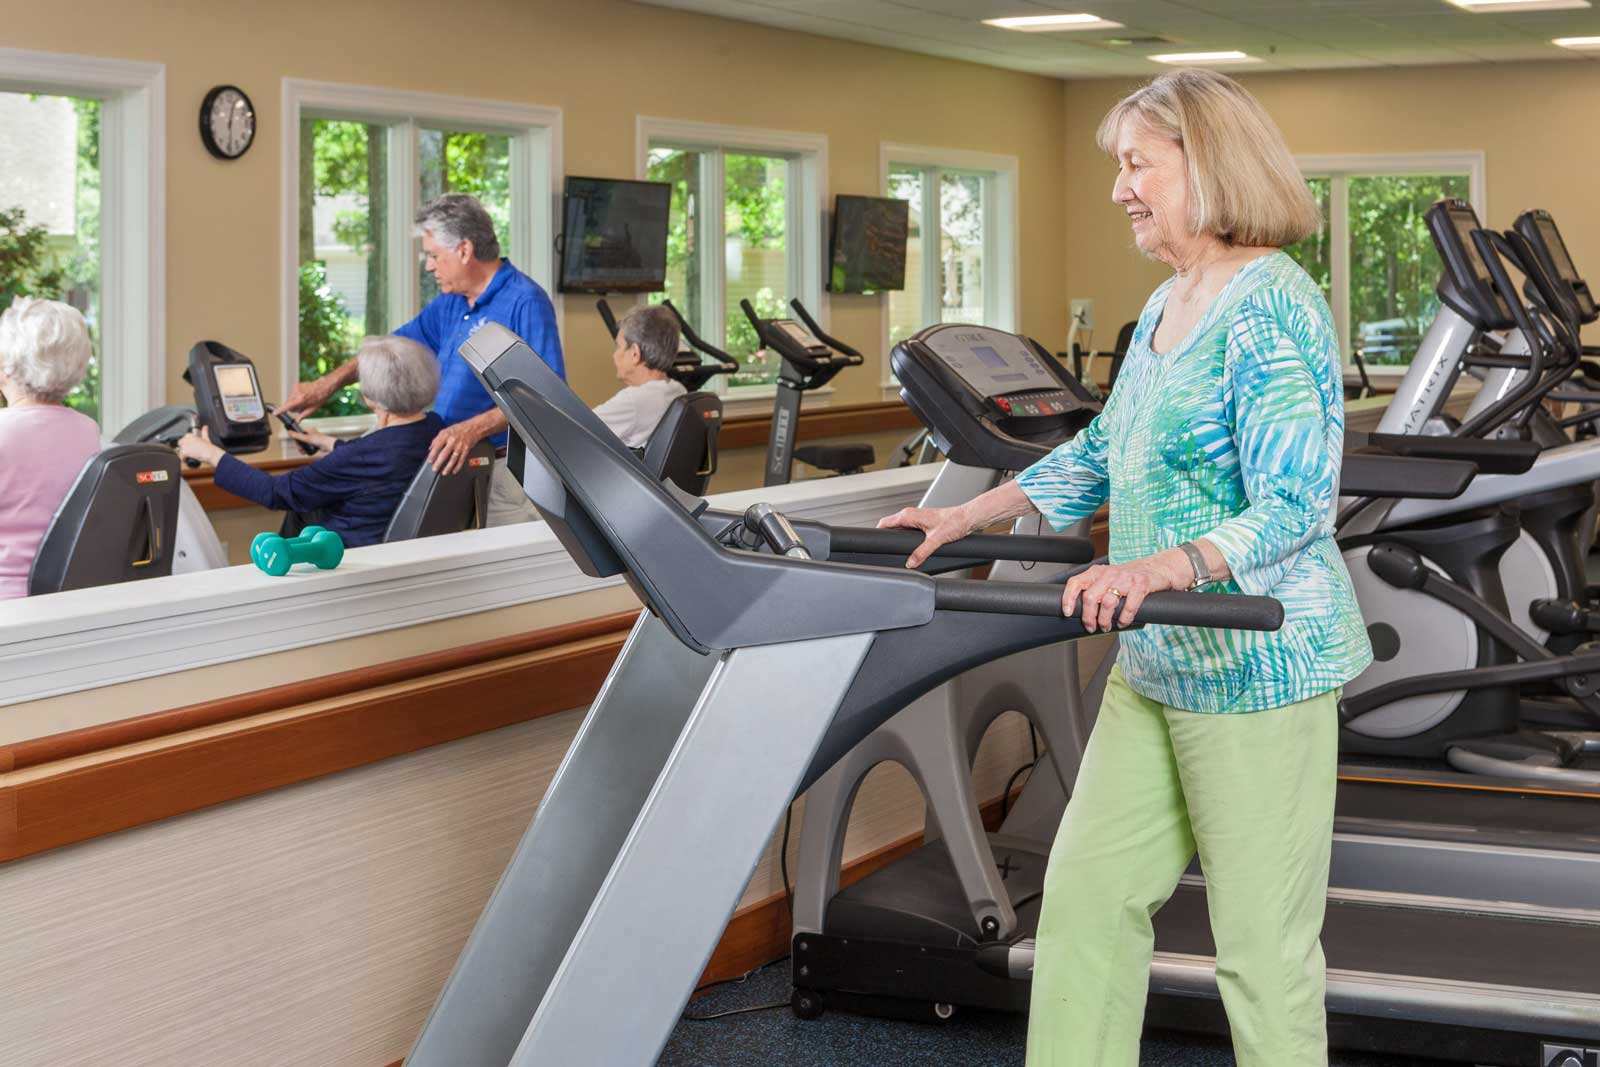 woman-uses-treadmill